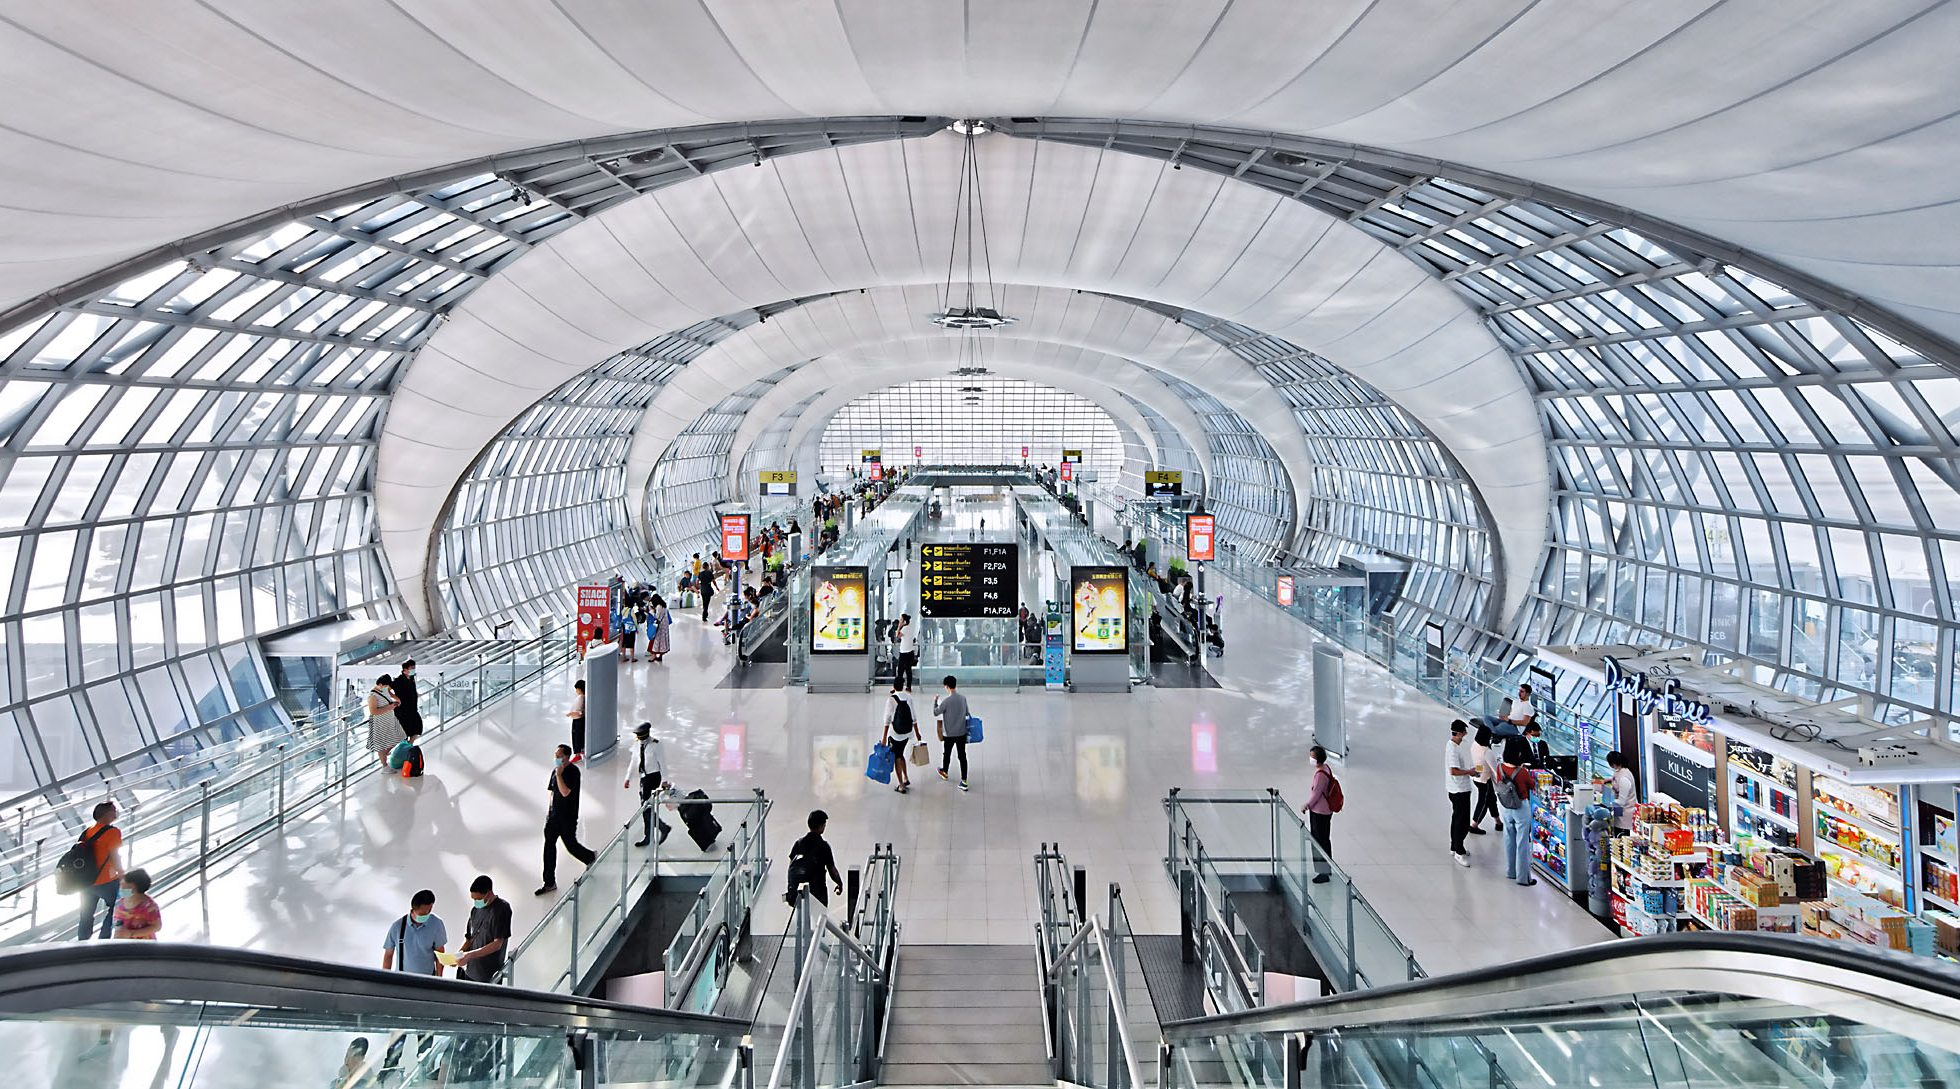 Paul Dingman is an expert in the architectural photography of airports.